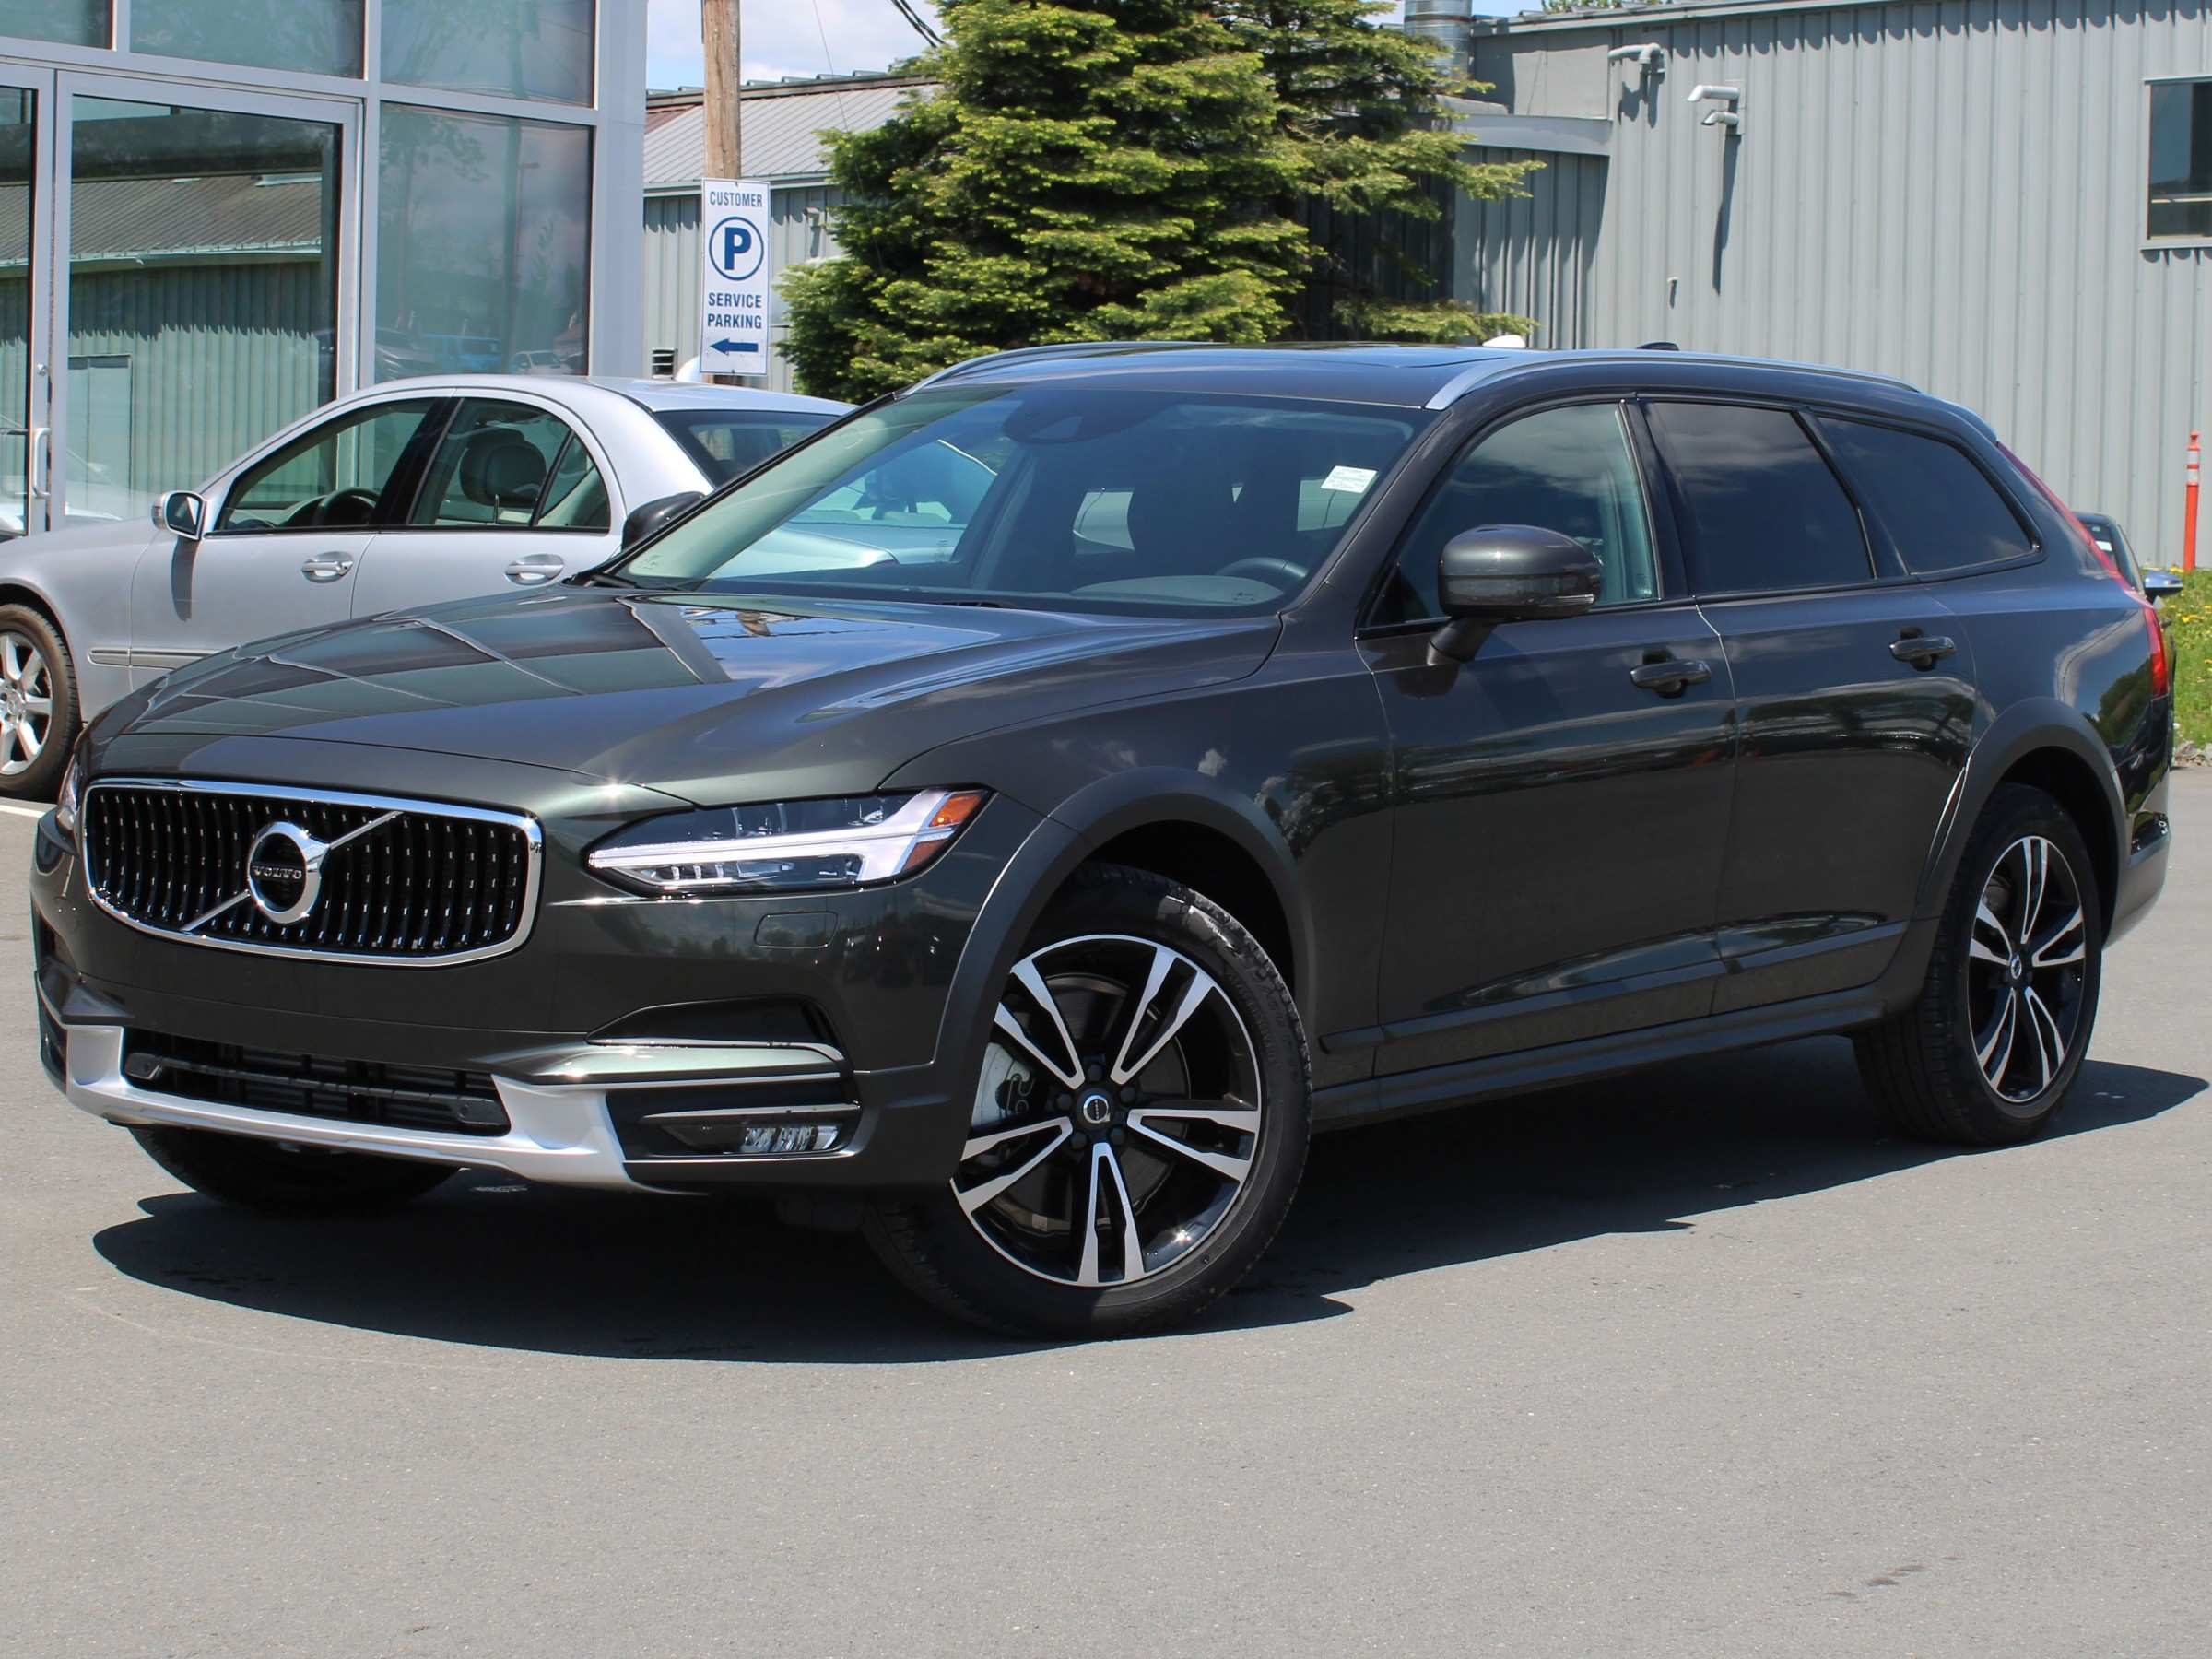 86 A V90 Volvo 2019 Release Date